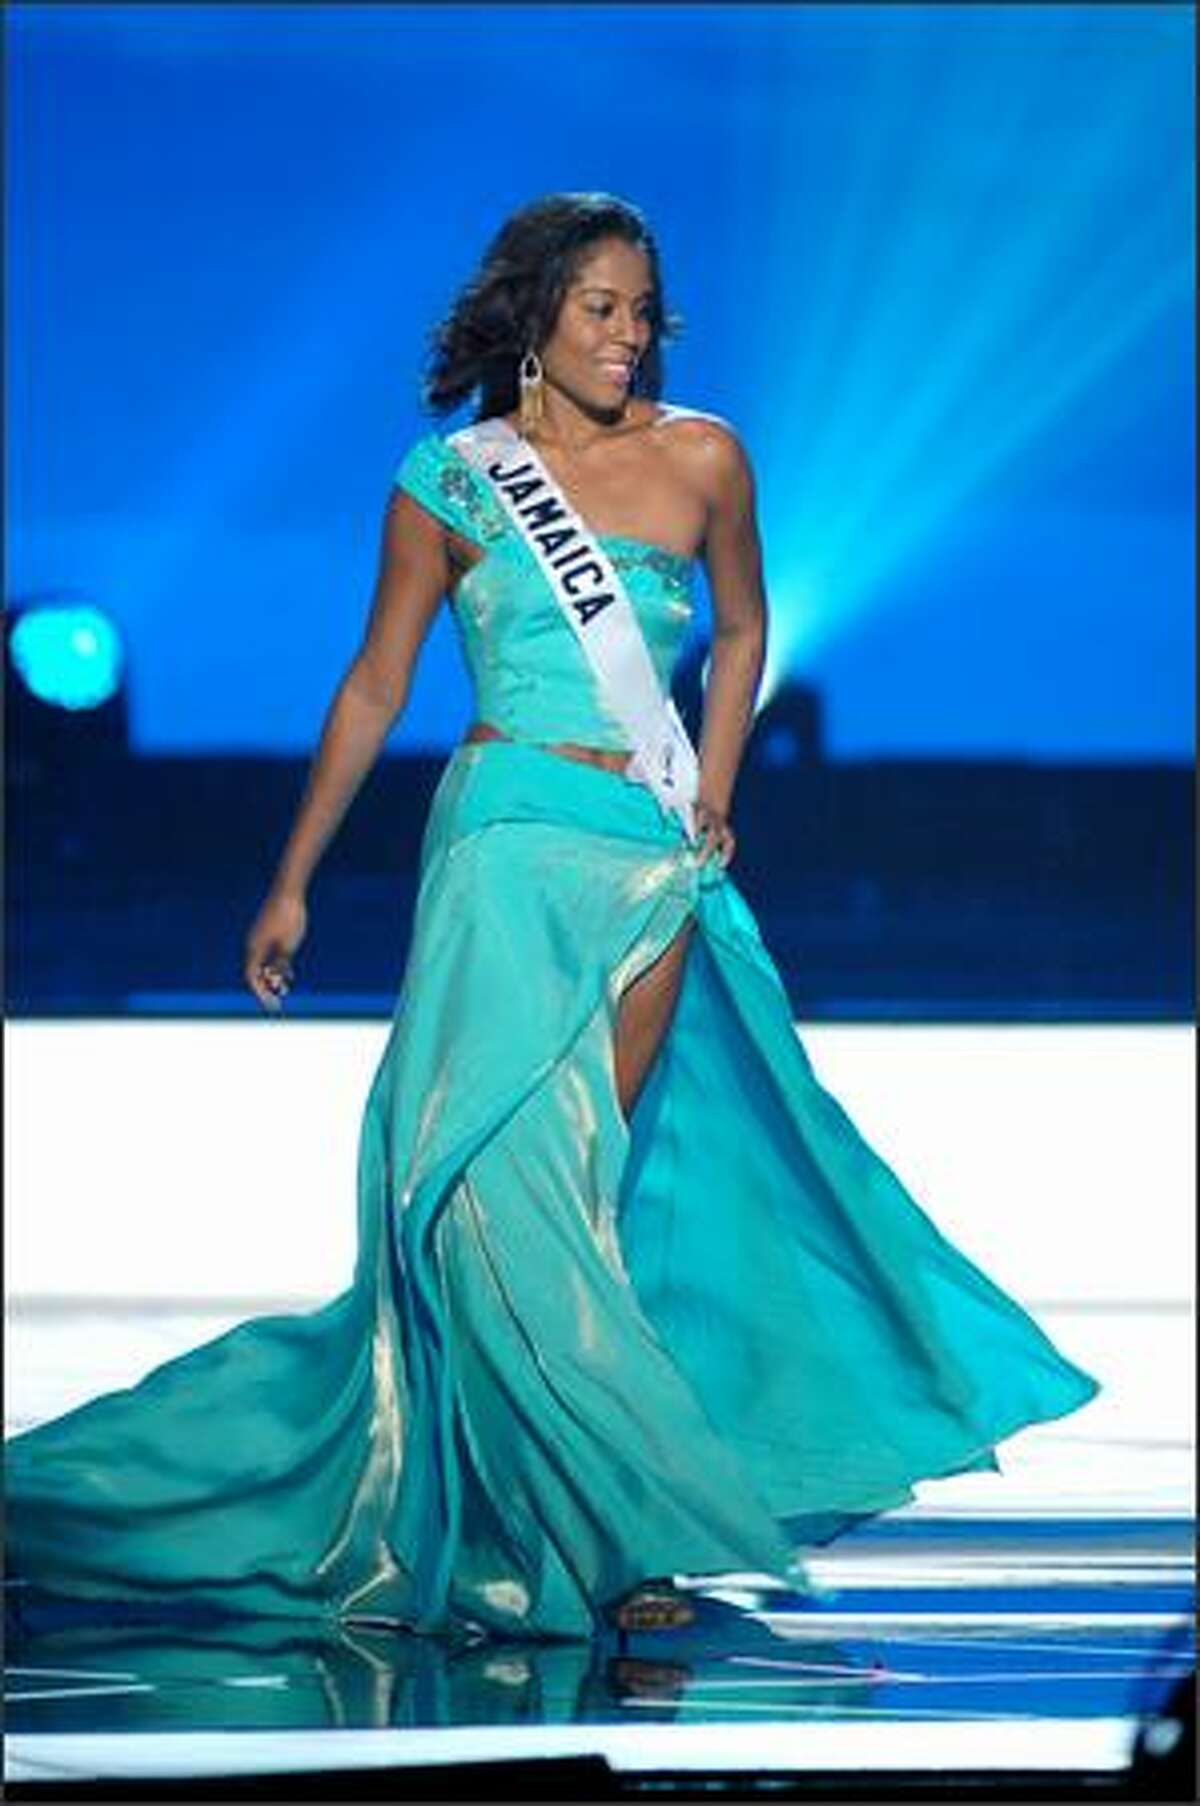 Raquel Wright, Miss Jamaica, competes in an evening gown of her choice during the 2005 Miss Universe Presentation Show at Impact Arena, Exhibition and Convention Center in Bangkok, Thailand on May 26. During the presentation show, each contestant was judged by a preliminary panel of six judges in swimsuit and evening gown categories, after two days of one-on-one interviews. The scores will be tallied and the top 15 contestants will be announced during Monday's telecast (NBC, tape-delayed to 9 p.m. PDT), at the conclusion of which a winner will be crowned.